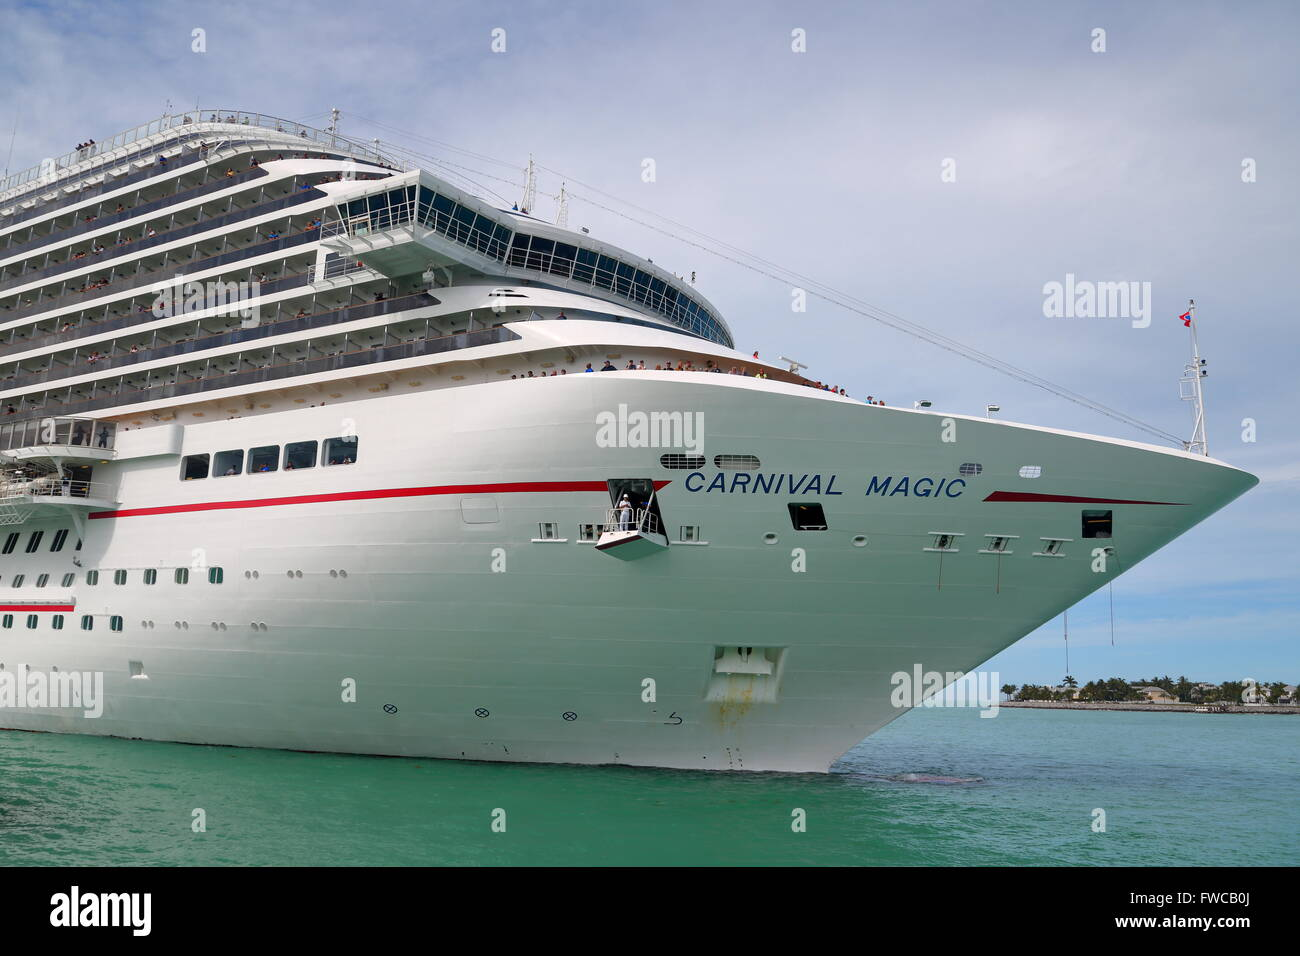 Jimco Lamp 100+ [ 24 Pictures Carnival Cruise Ad ] | Carnival Cruise ...